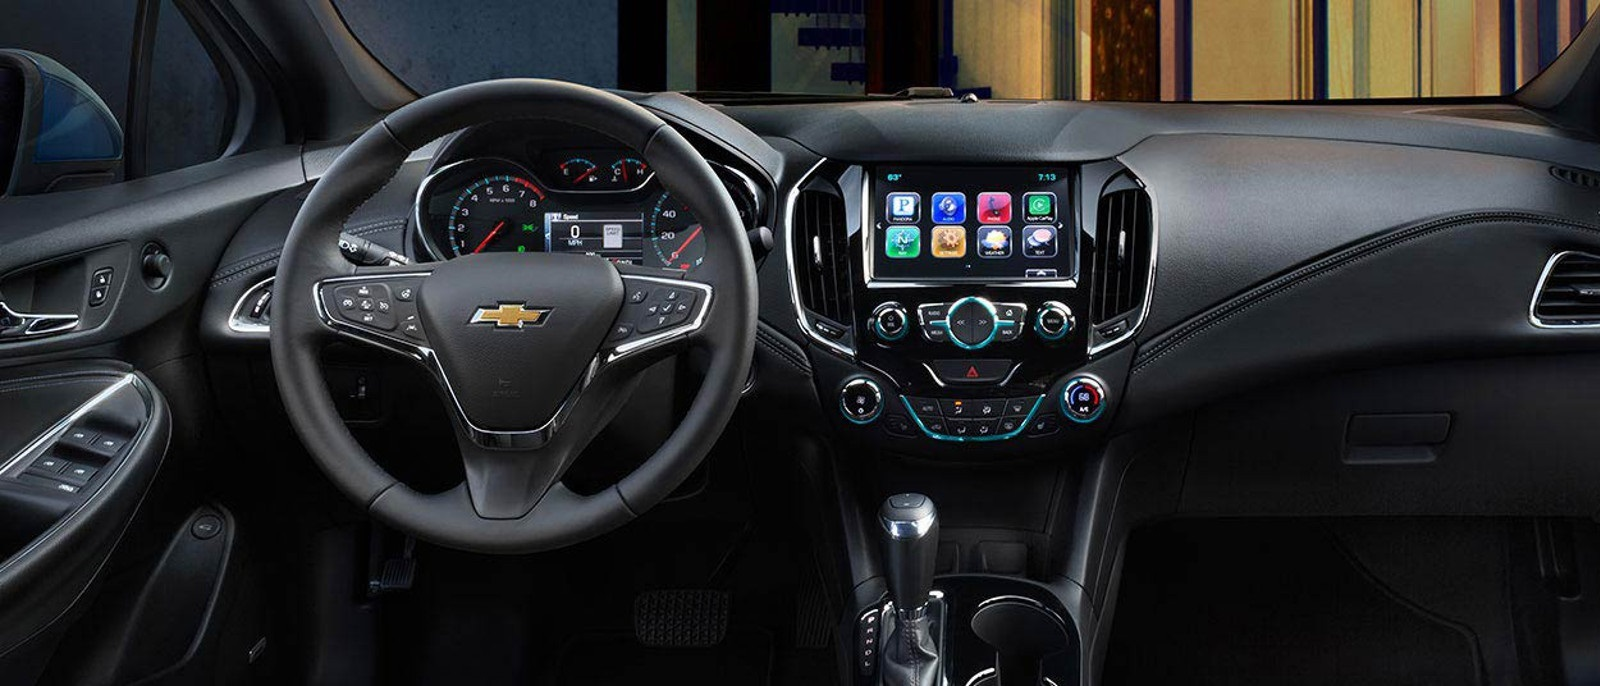 Cruze chevy cruze 2014 interior : 2016 Chevy Cruze In Chicago, IL | Mike Anderson Chicago